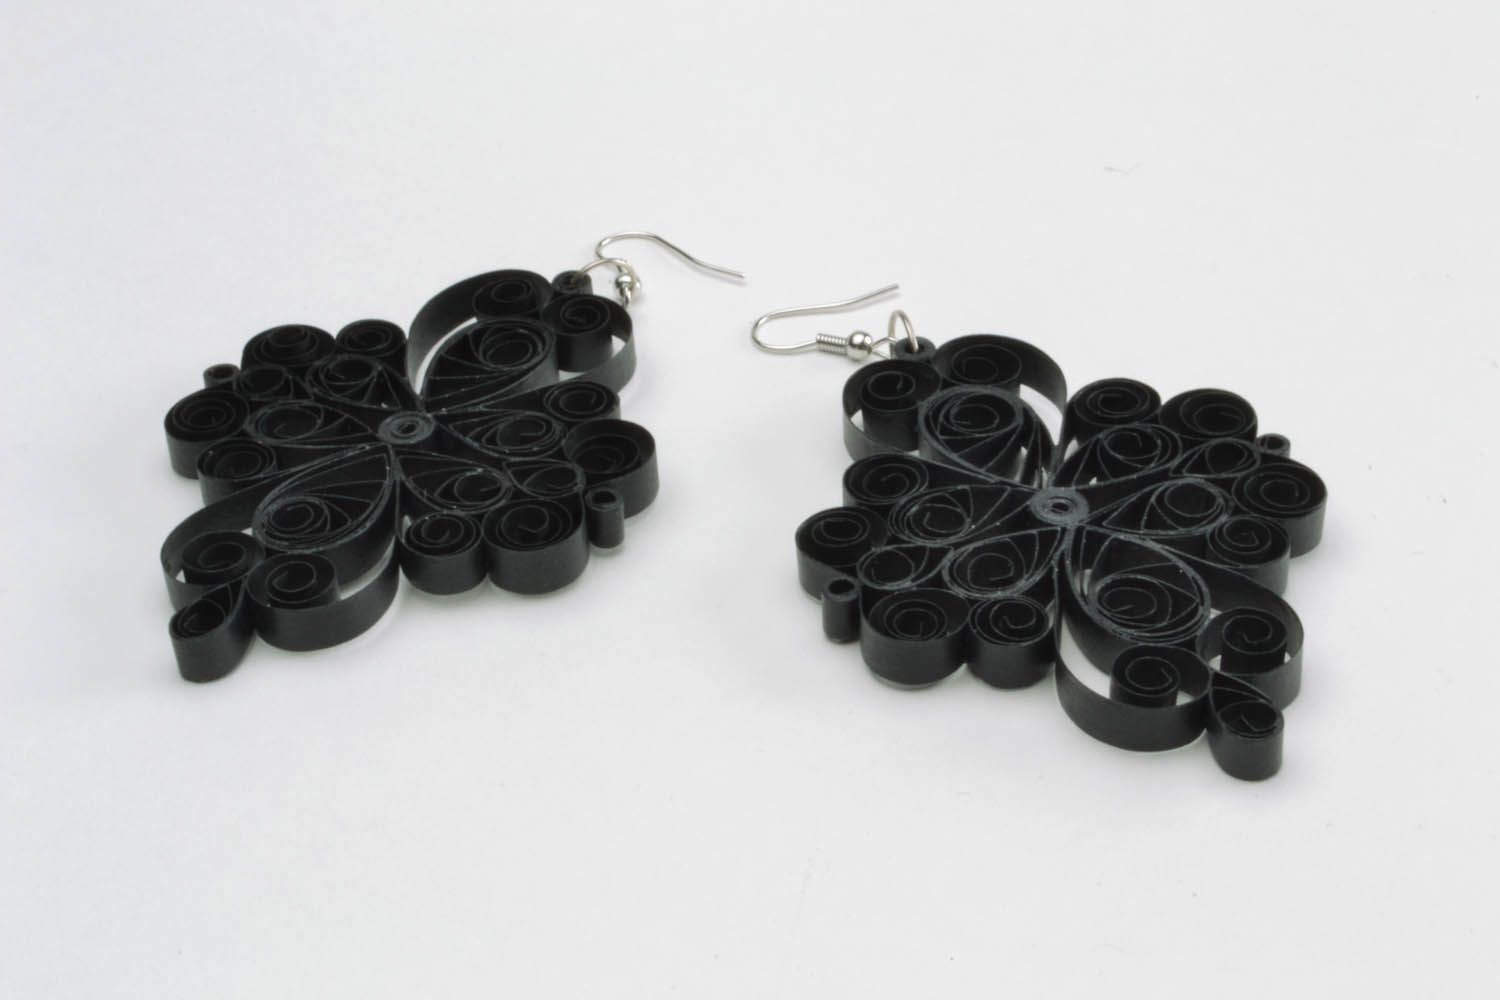 Handmade lace black earrings photo 5